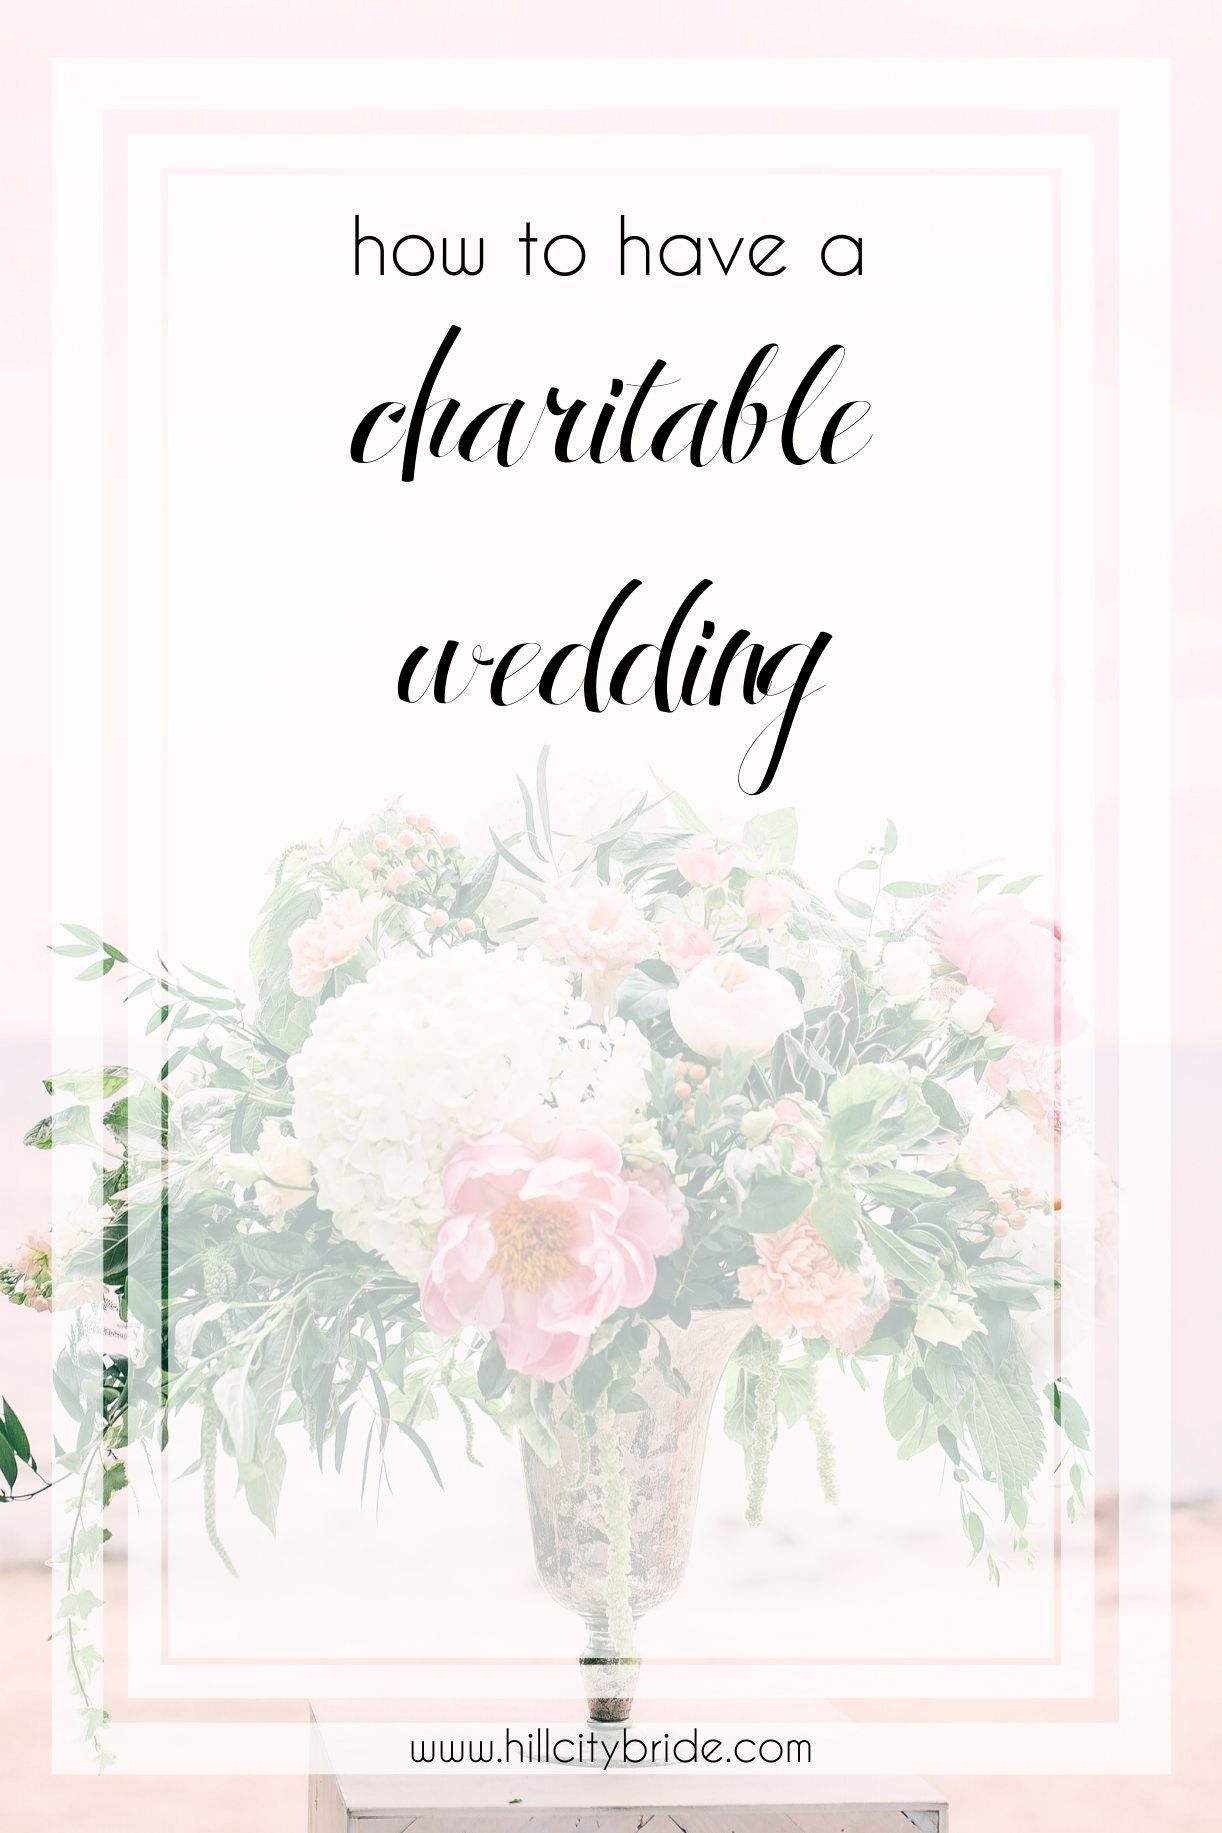 How to Have a Charitable Wedding in 2020 Charitable